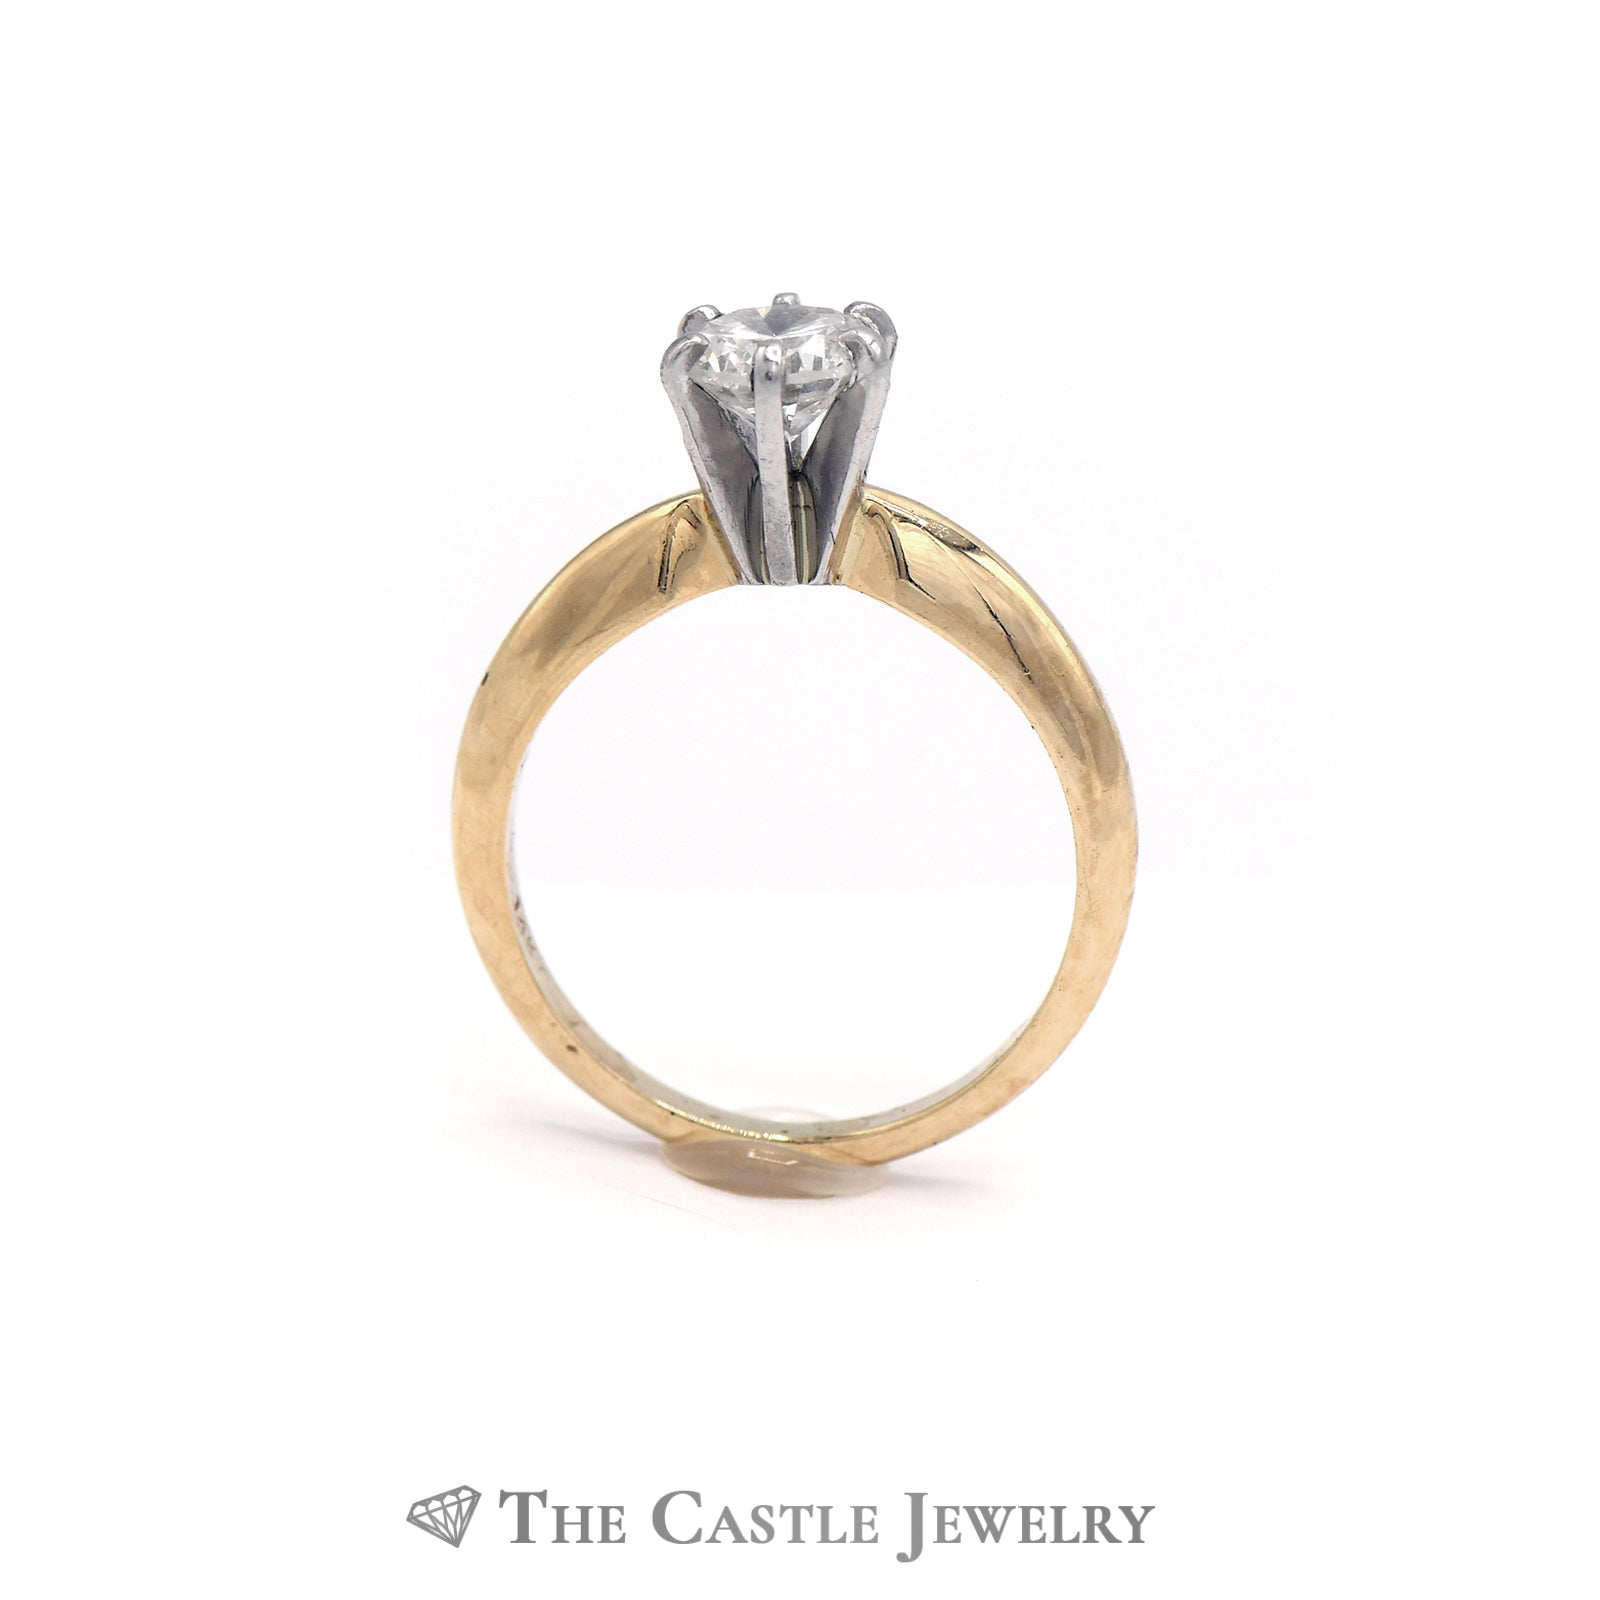 Round Brilliant Cut Diamond Solitaire Engagement Ring in 14K Yellow Gold-1